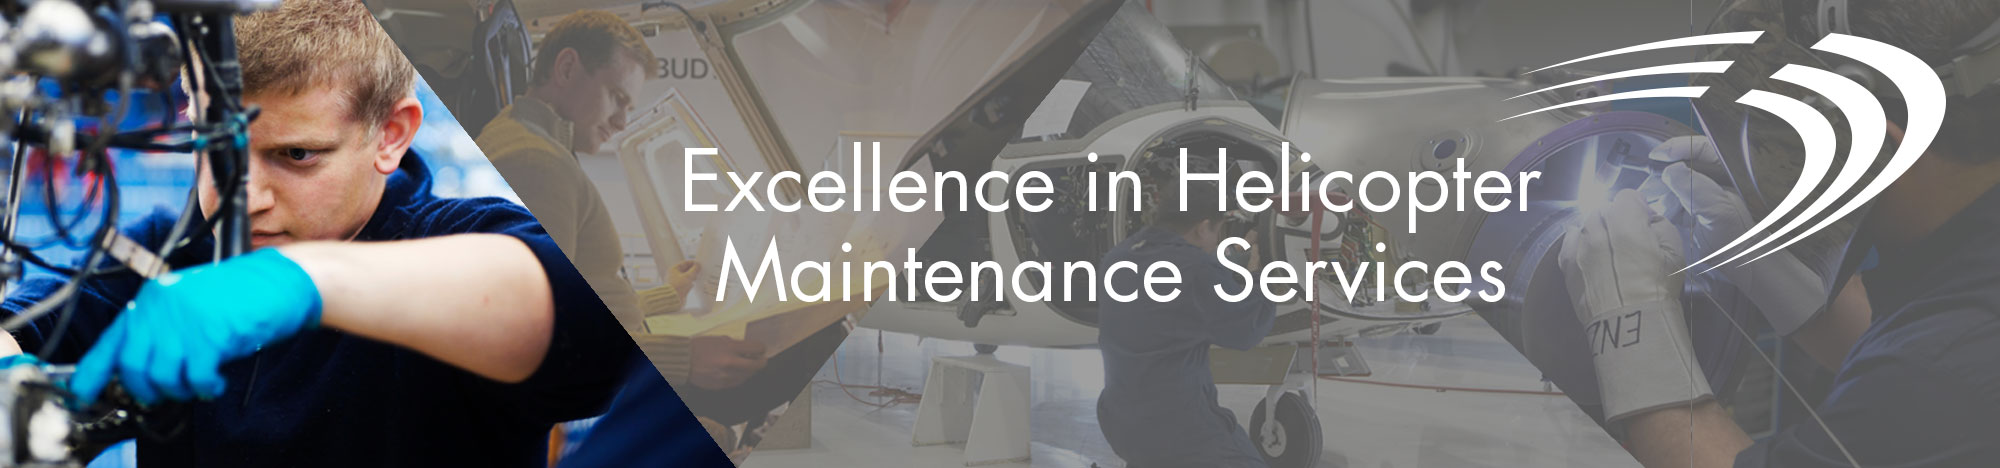 Heli-One Helicopter Maintenance Repair Overhaul Banner